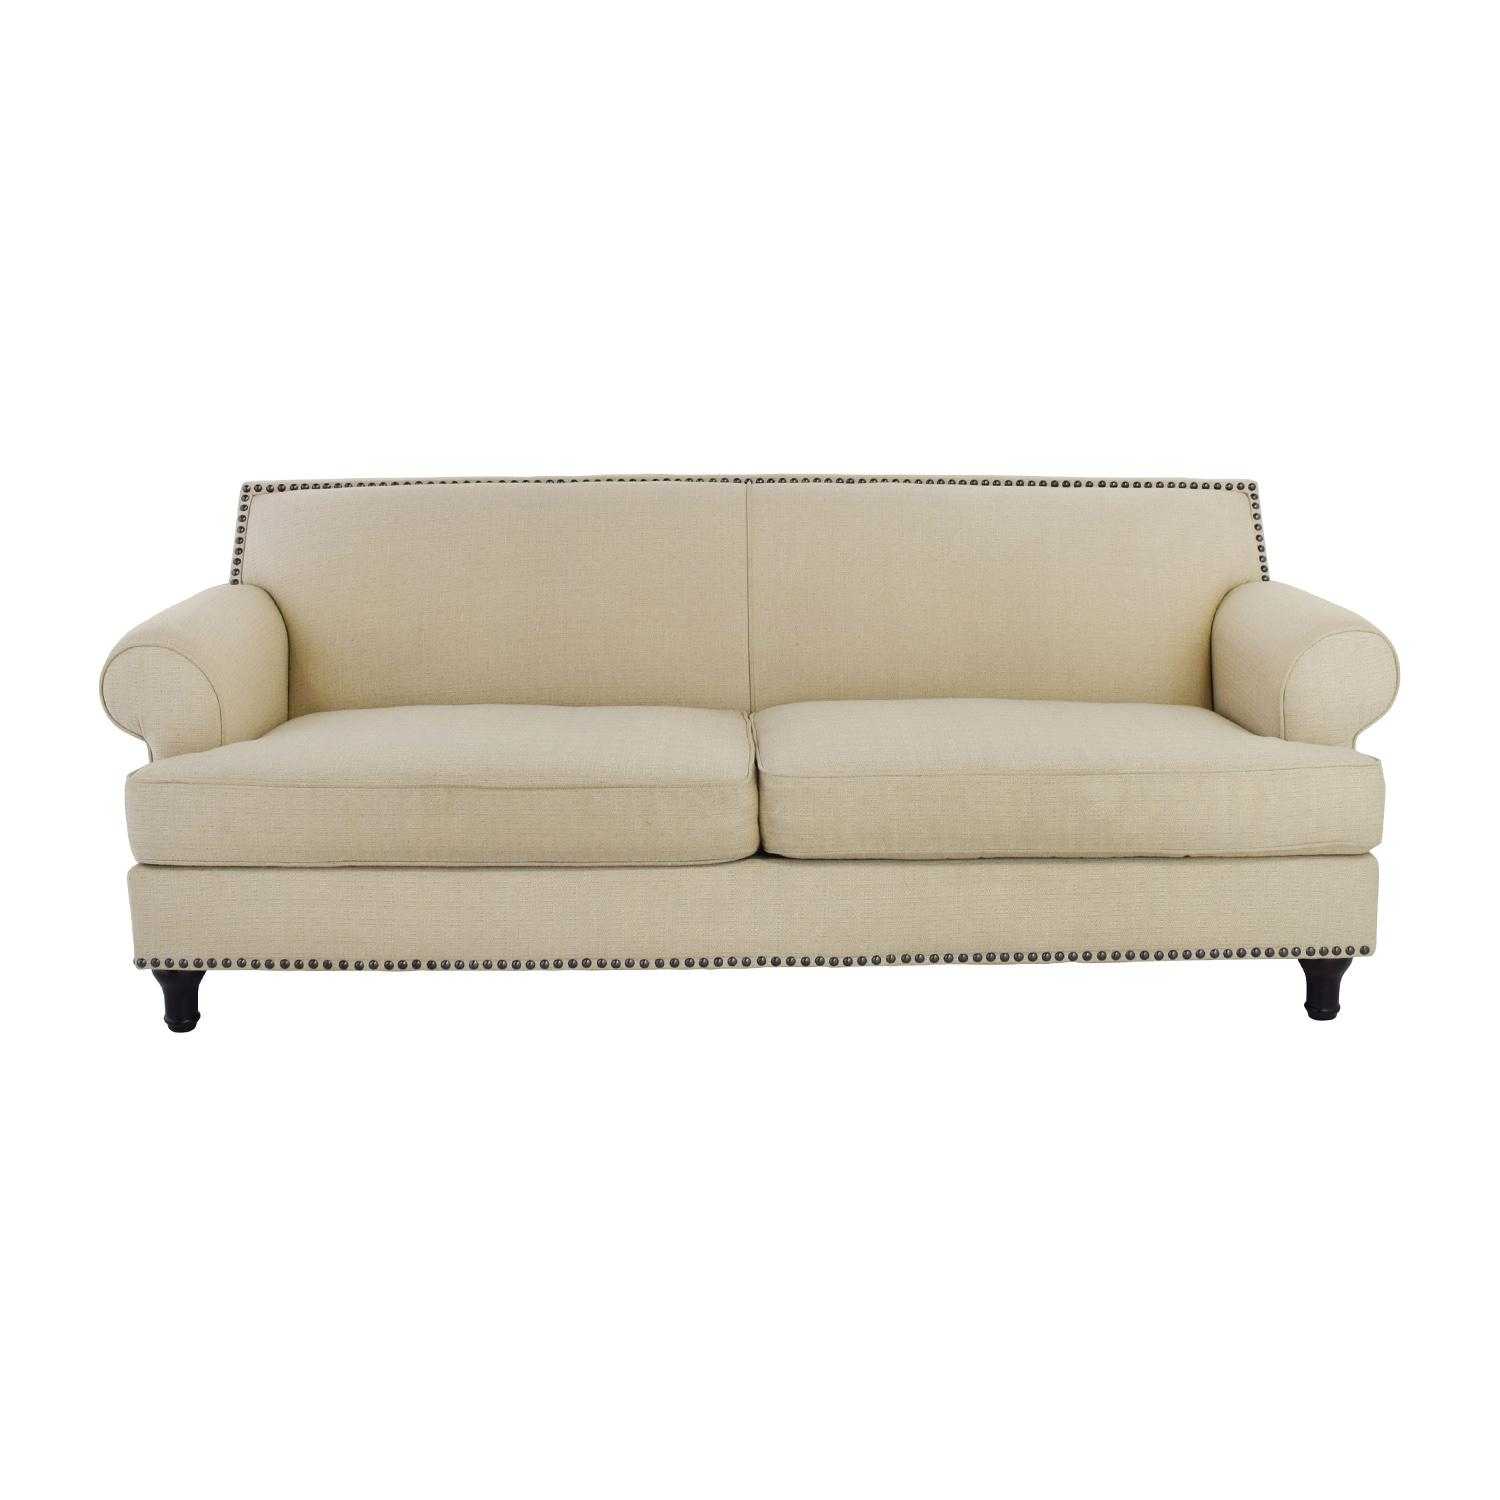 32% Off – Pier 1 Imports Pier 1 Imports Putty Tan Tufted Loveseat Throughout Pier 1 Sofa Beds (Image 1 of 20)